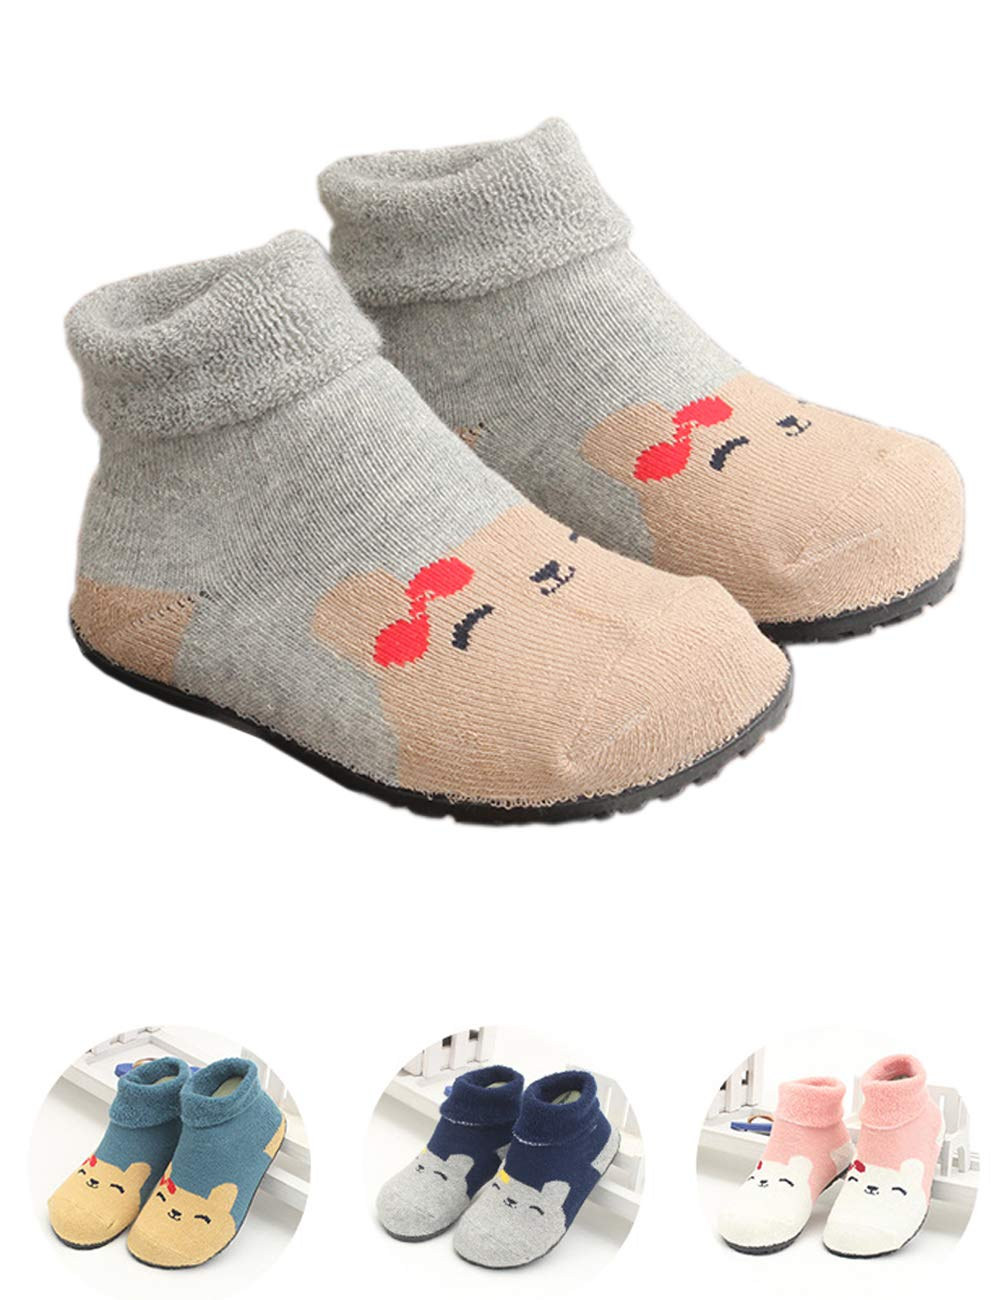 Baby Boys Girls Slipper Socks Floor Socks Walkers Shoes Rubber Bottom Soles Non Skid Non Water Protect Feet (Gray Bear, 5 1/2'')